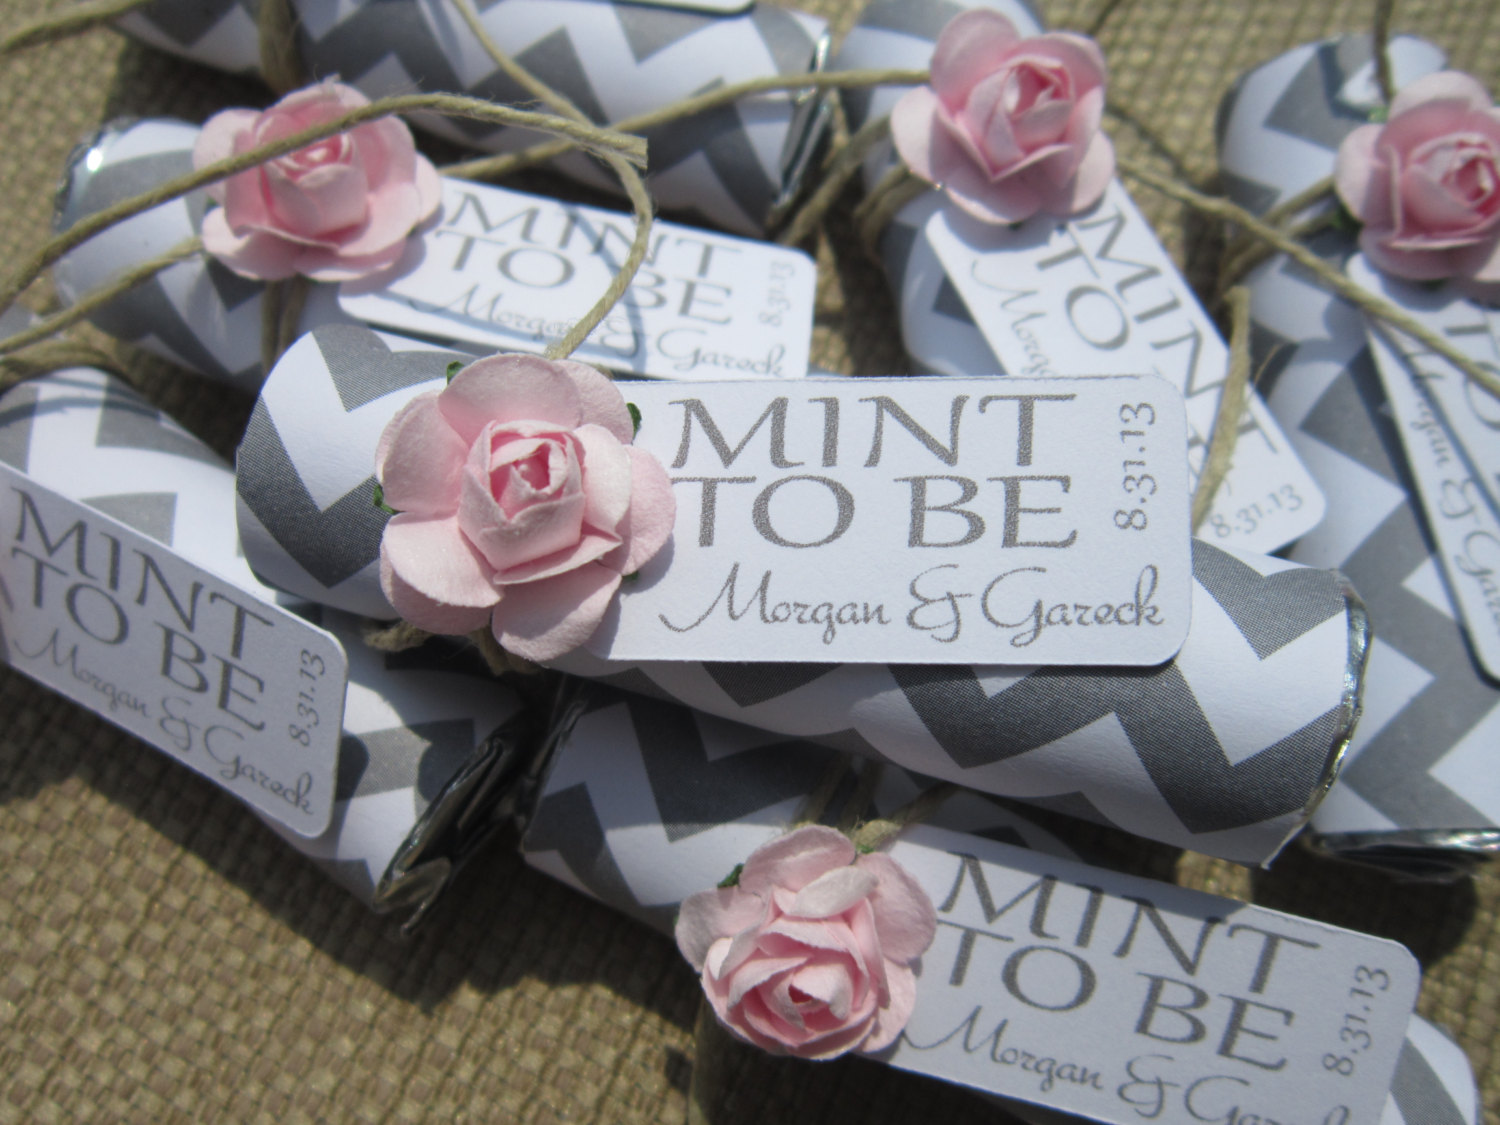 Mint Wedding Favors Set Of 24 Rolls To Be With Personalized Tag Grey Chevron Purple Pink